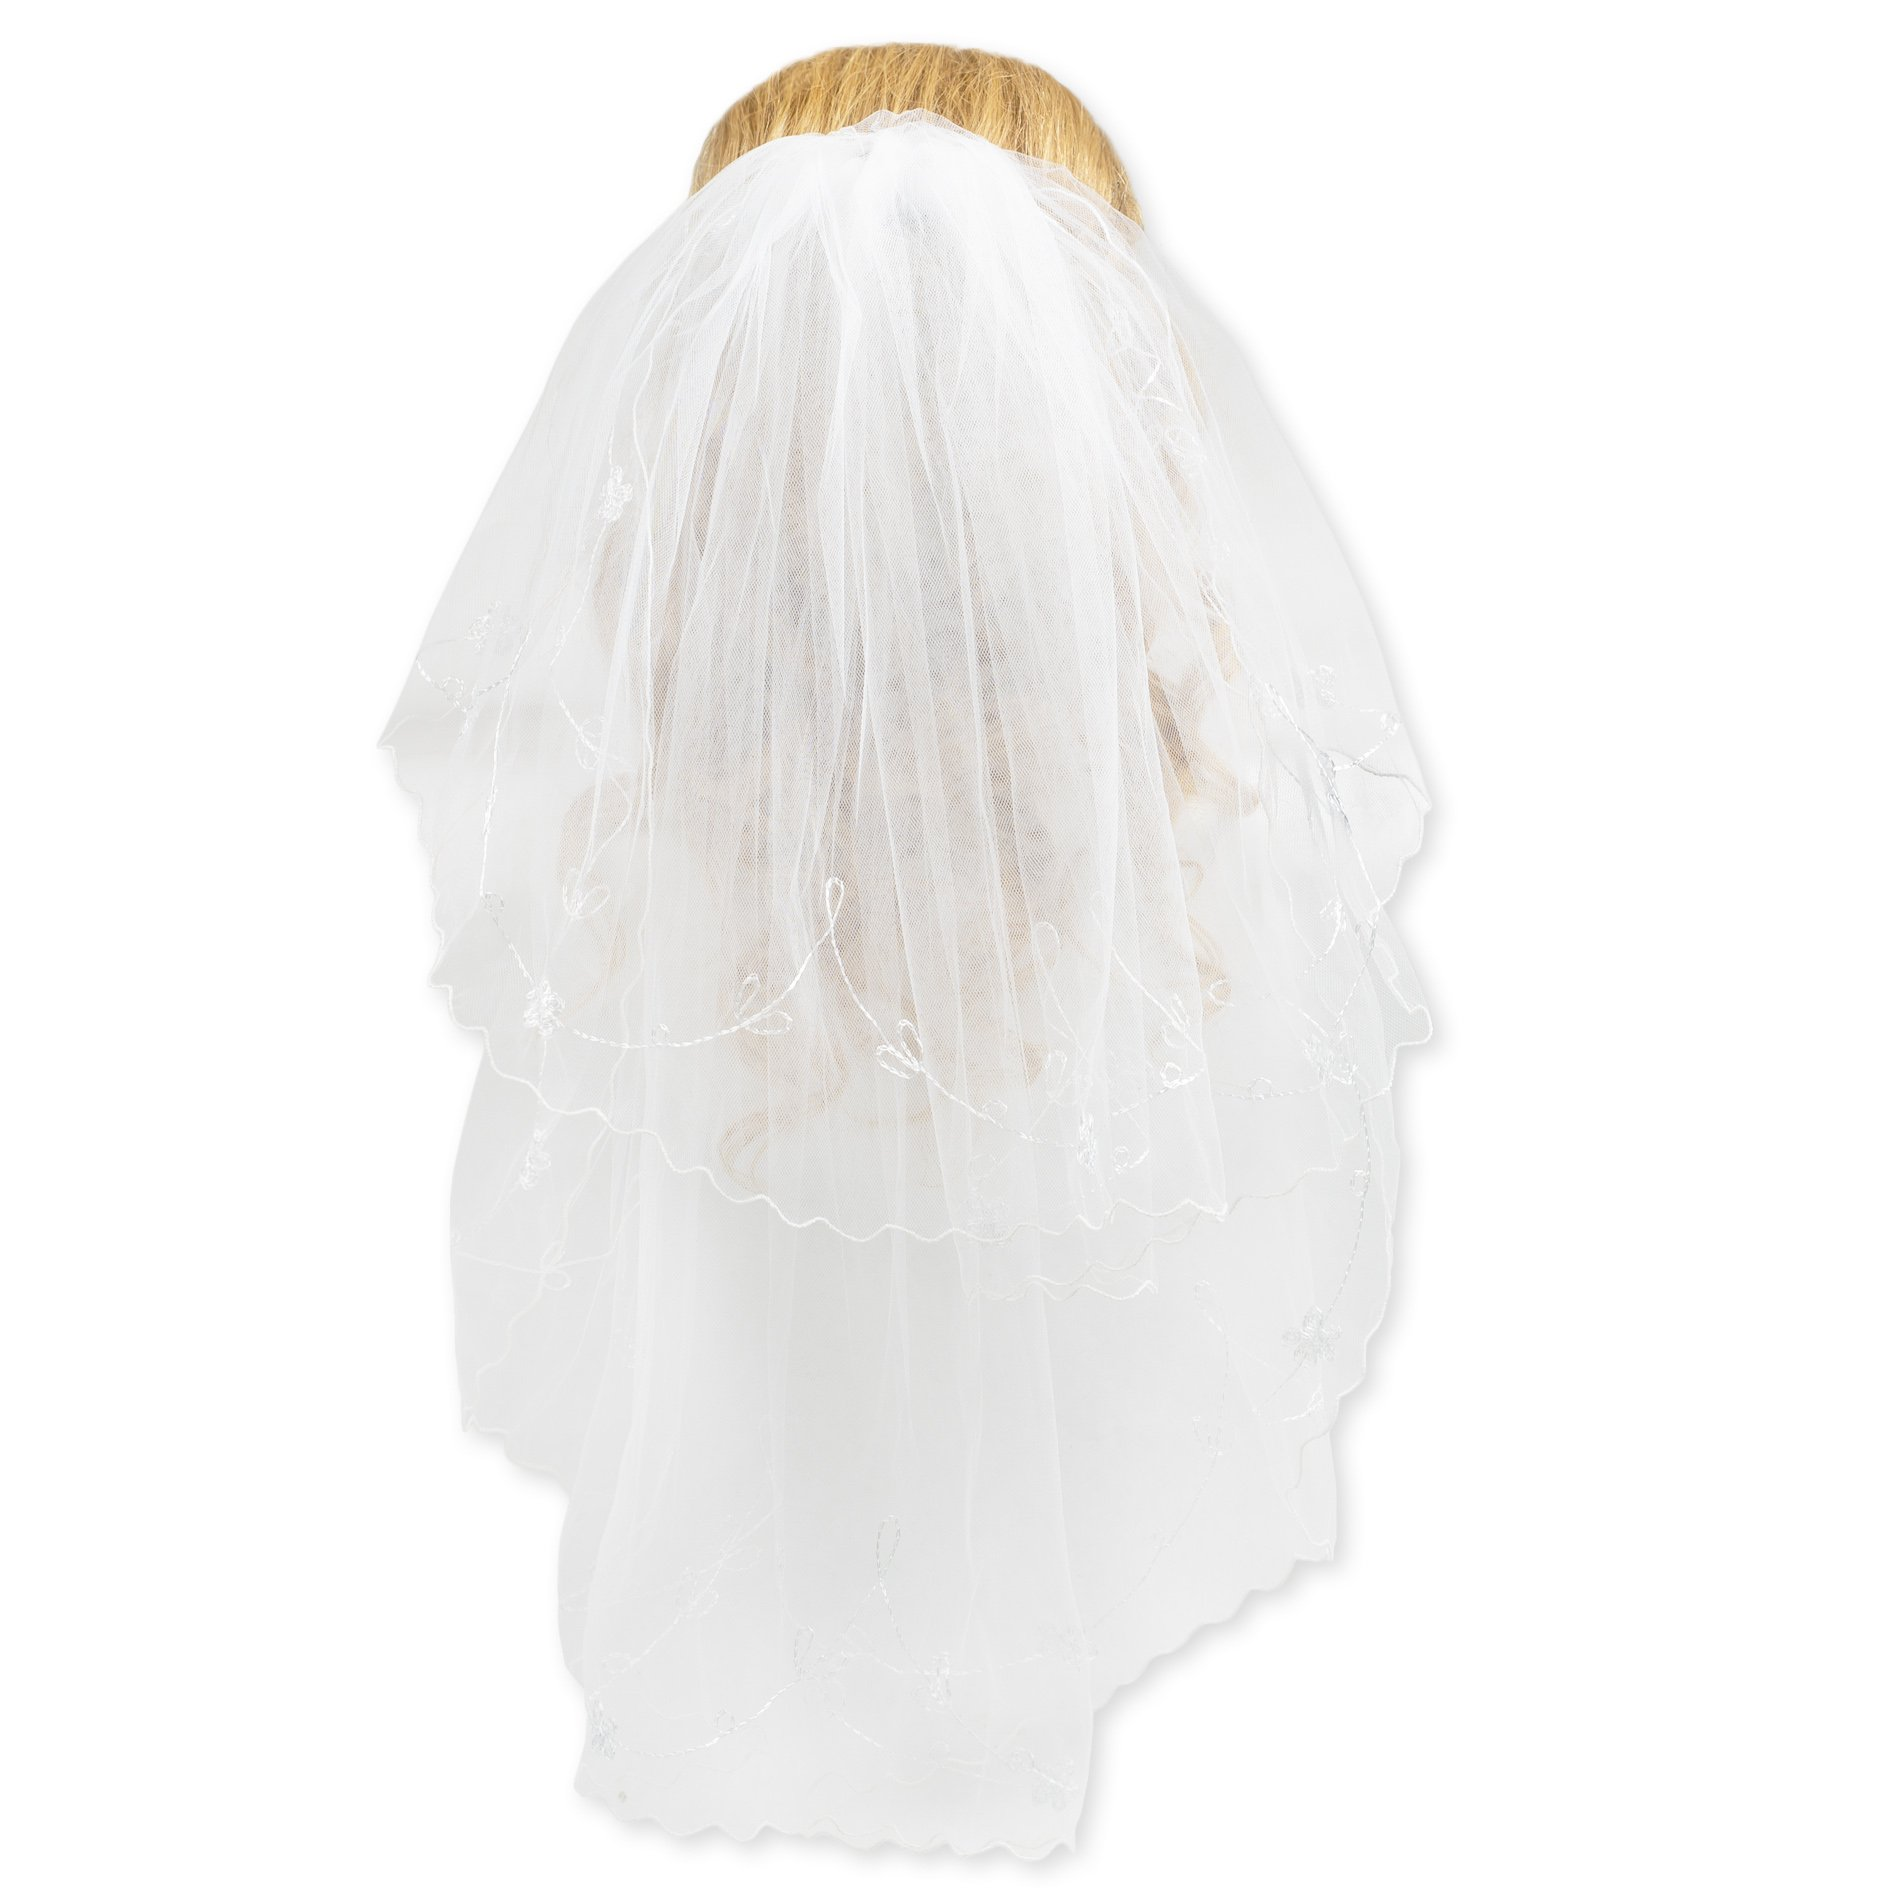 First Holy Communion White Tulle Veil with Embroidered Daisies